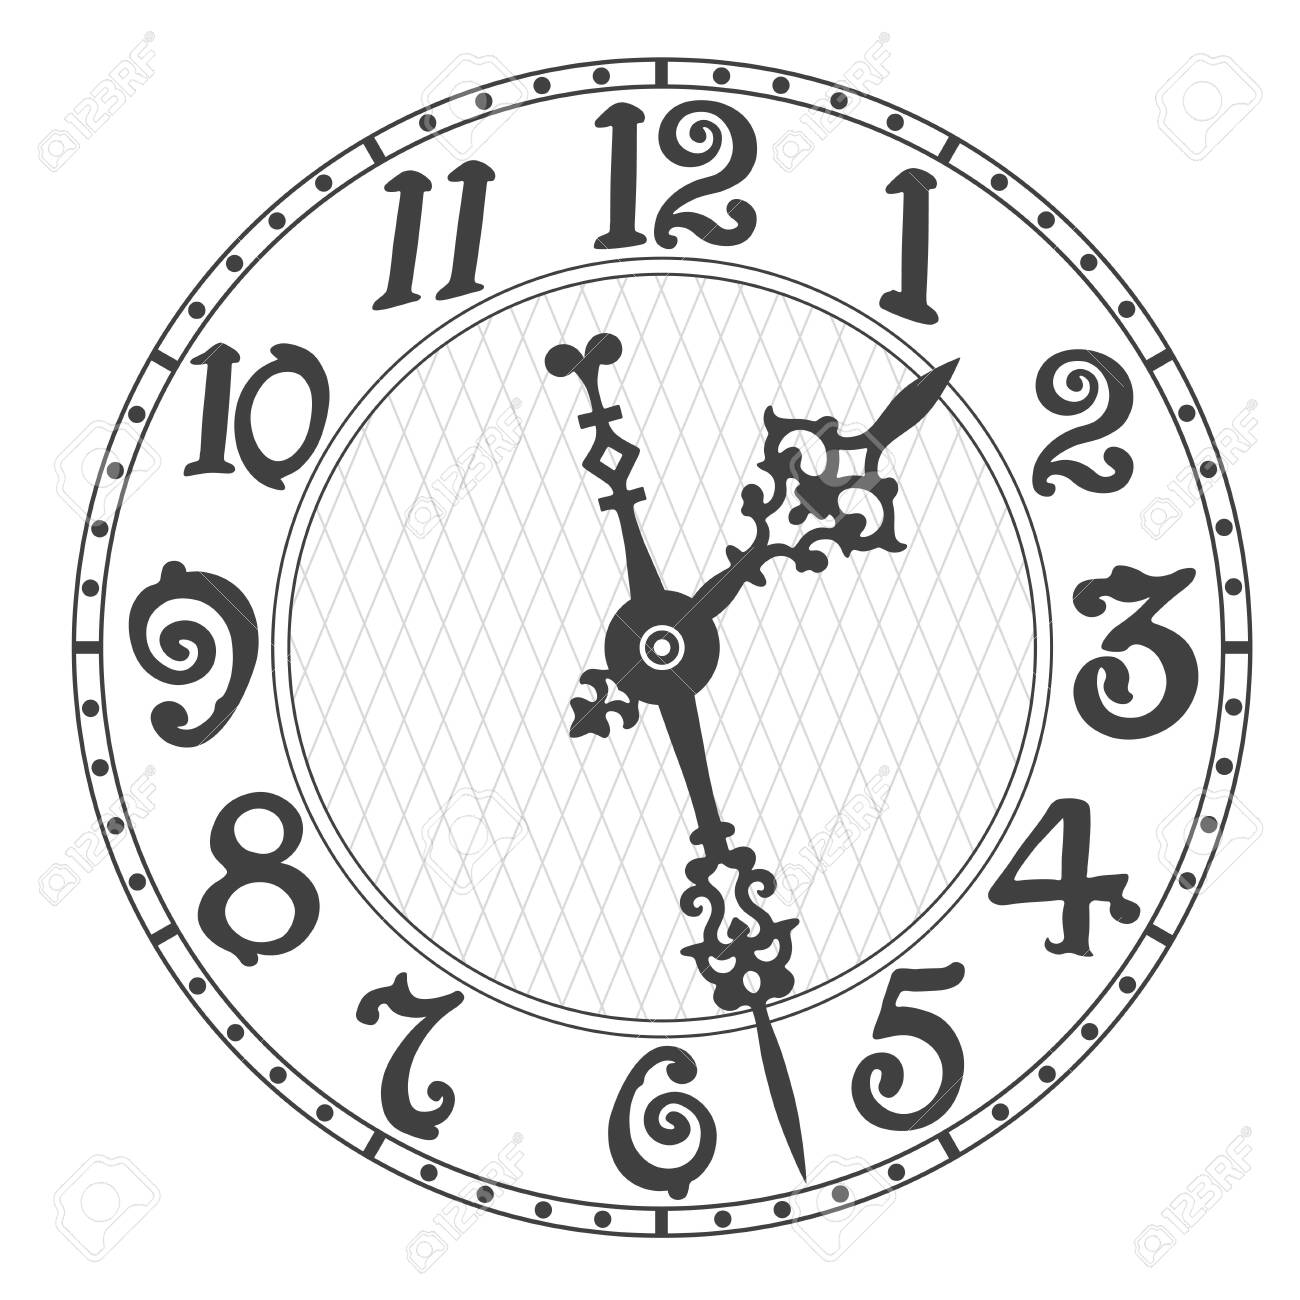 Elegant clock face and clock hands with tick marks placed on a white. Vector illustration. - 144216120